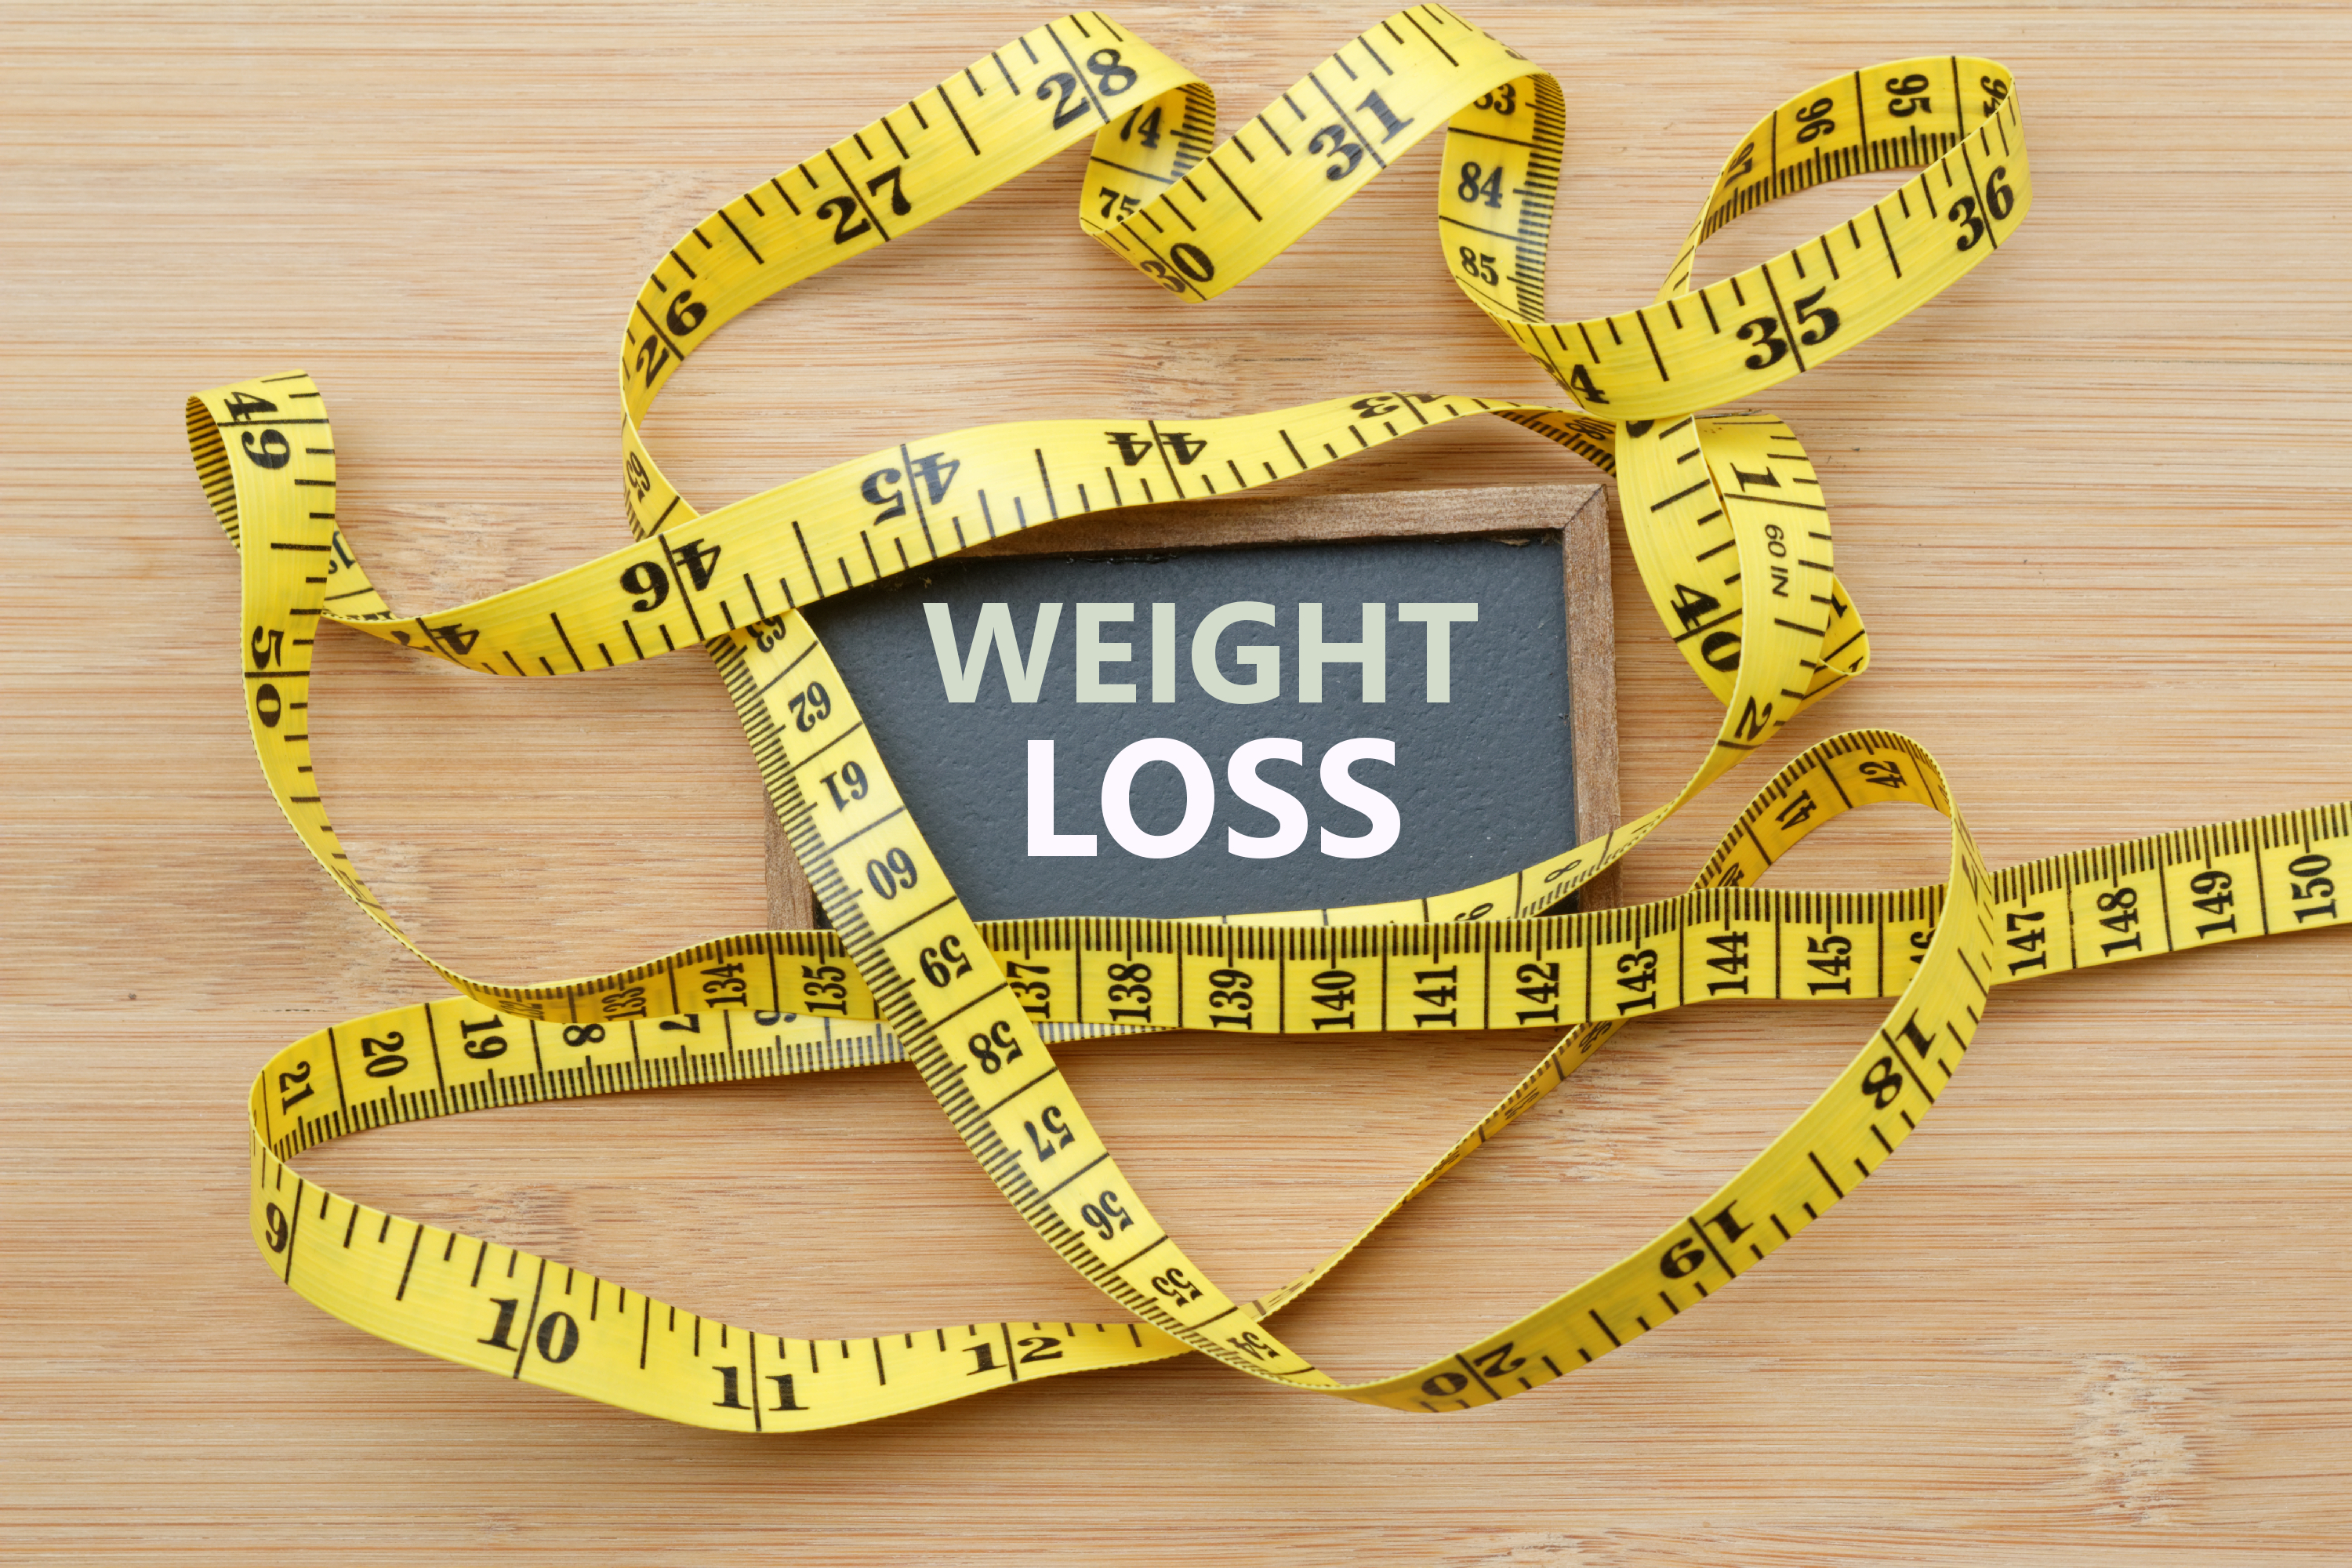 How to save the project from extra pounds